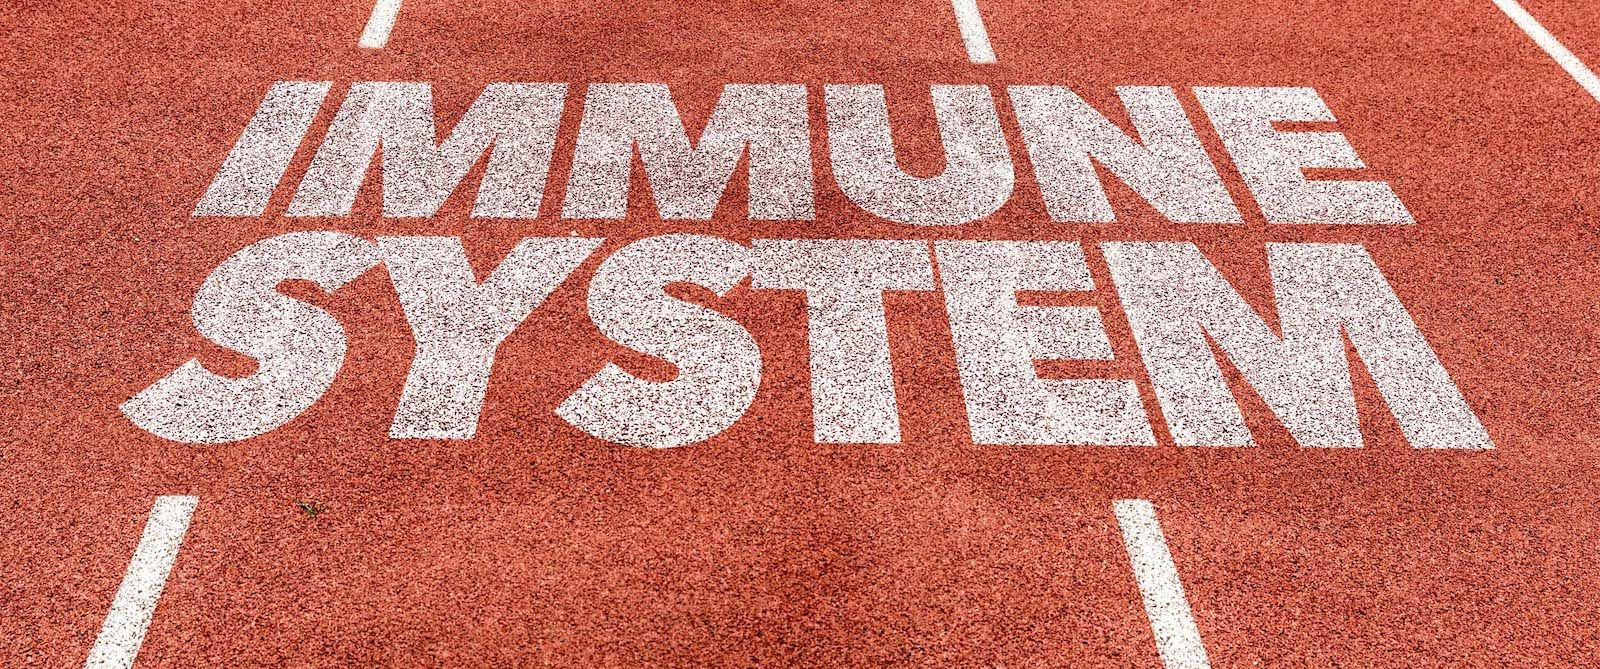 Order Immune Support Today and Stay On Track!